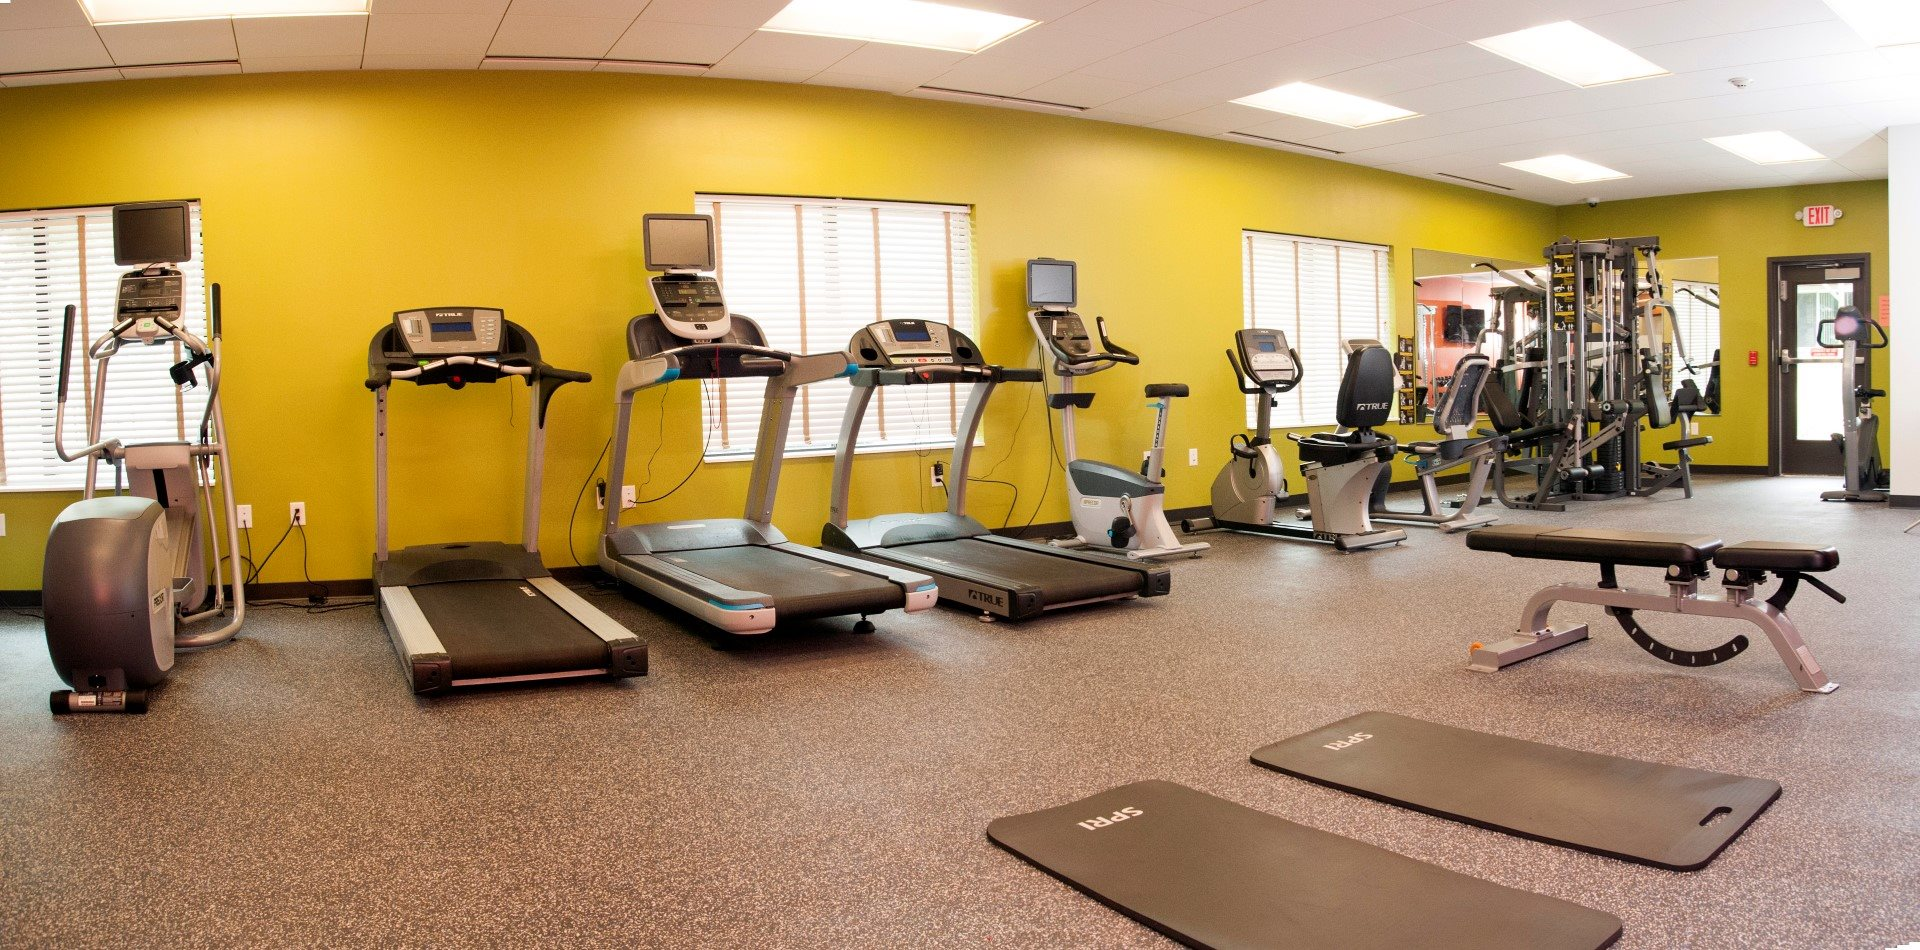 State-of-the-Art Fitness Center with Updated Equipment at Terra Pointe Apartments, St. Paul, MN